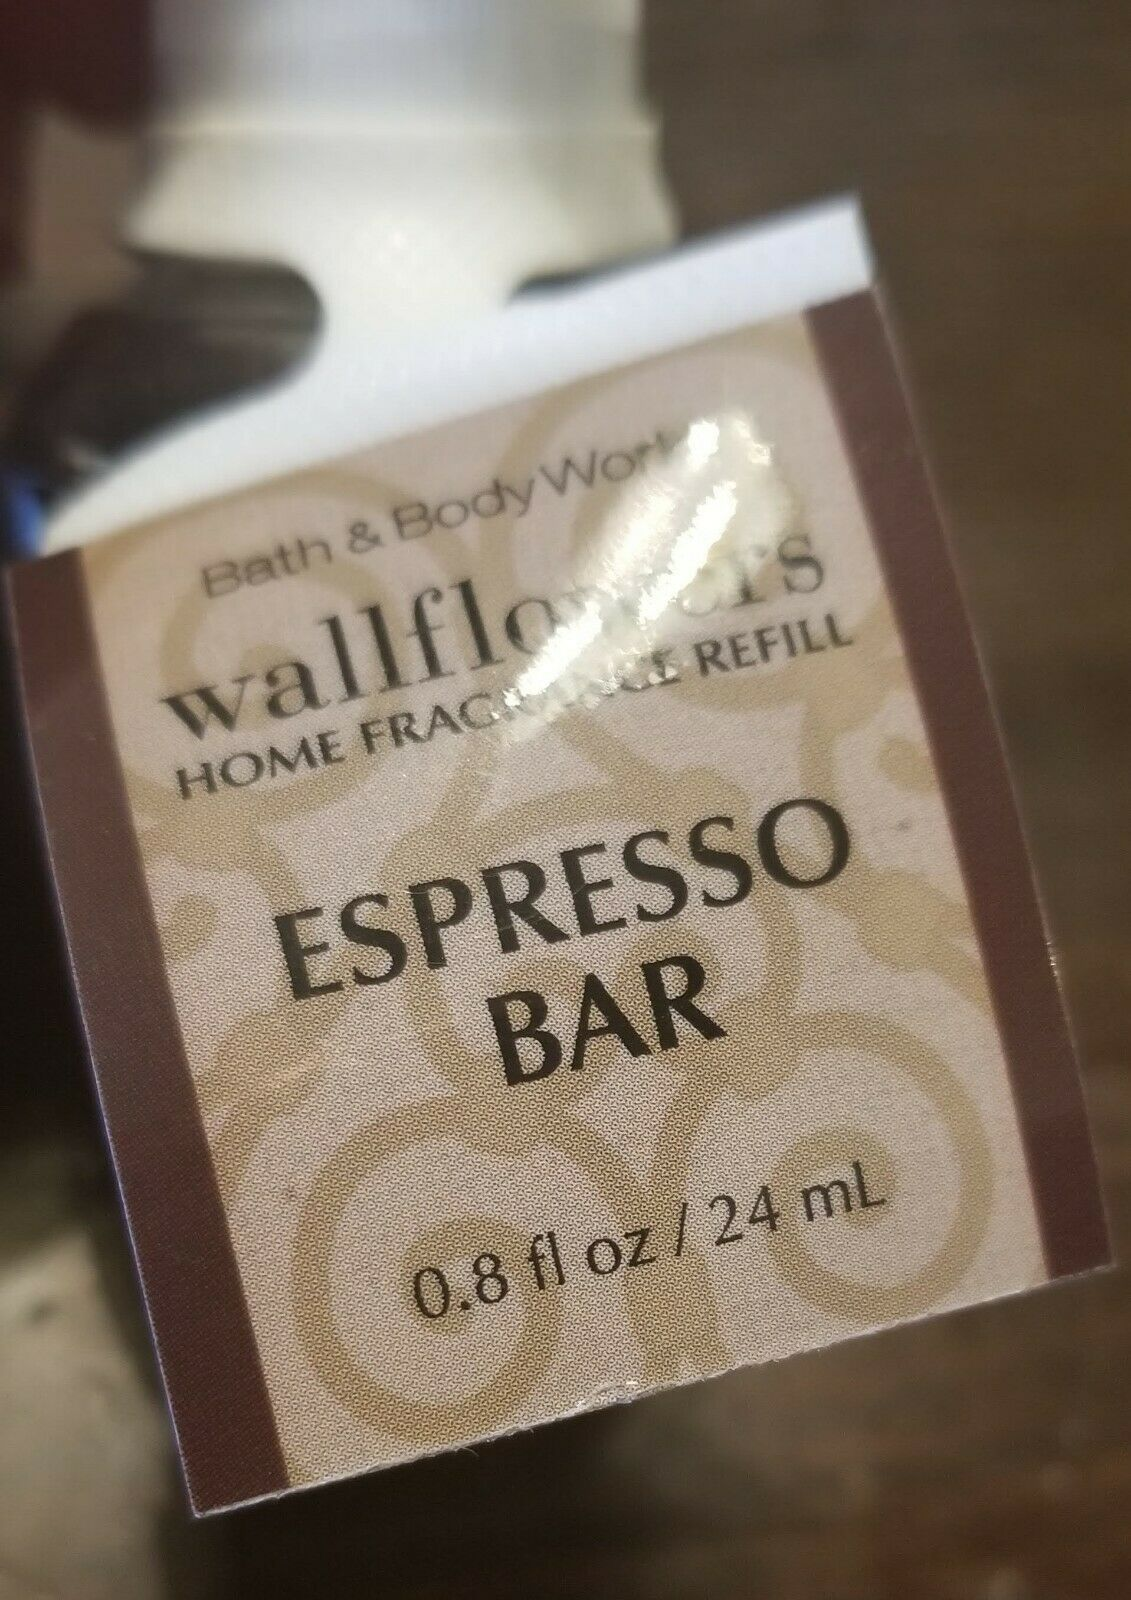 NEW Bath & Body Works Wallflowers ESPRESSO BAR Fragrance Refill Bulb